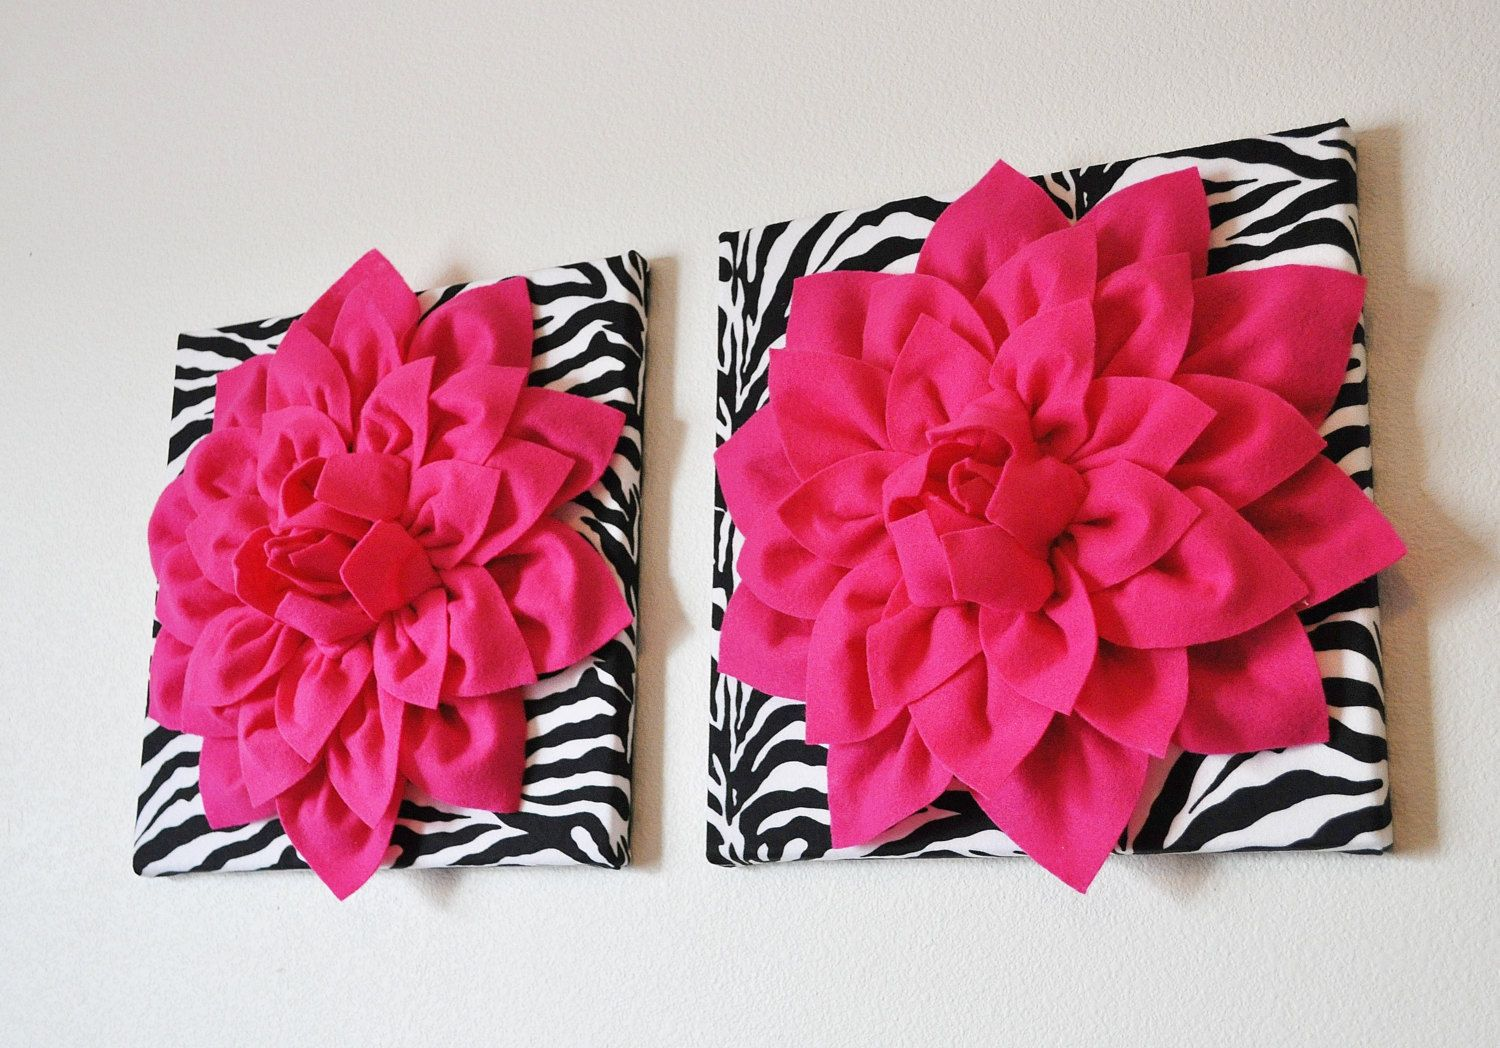 Two Wall Flowers Hot Pink Dahlia On Black And White Zebra Print 12 Canvas Art Baby Nursery Decor Via Etsy Perfect For A Room